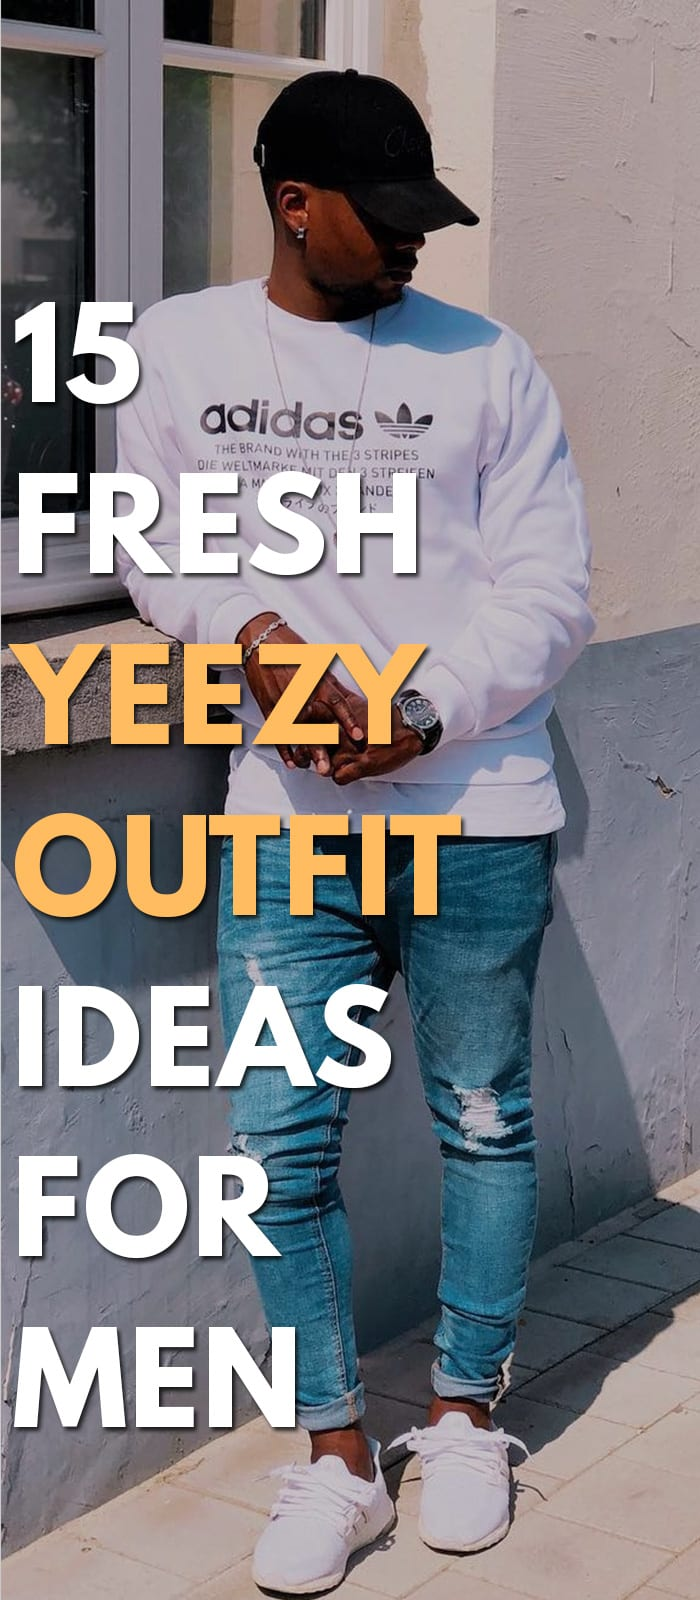 15 Fresh Yeezy Outfit Ideas For Men!